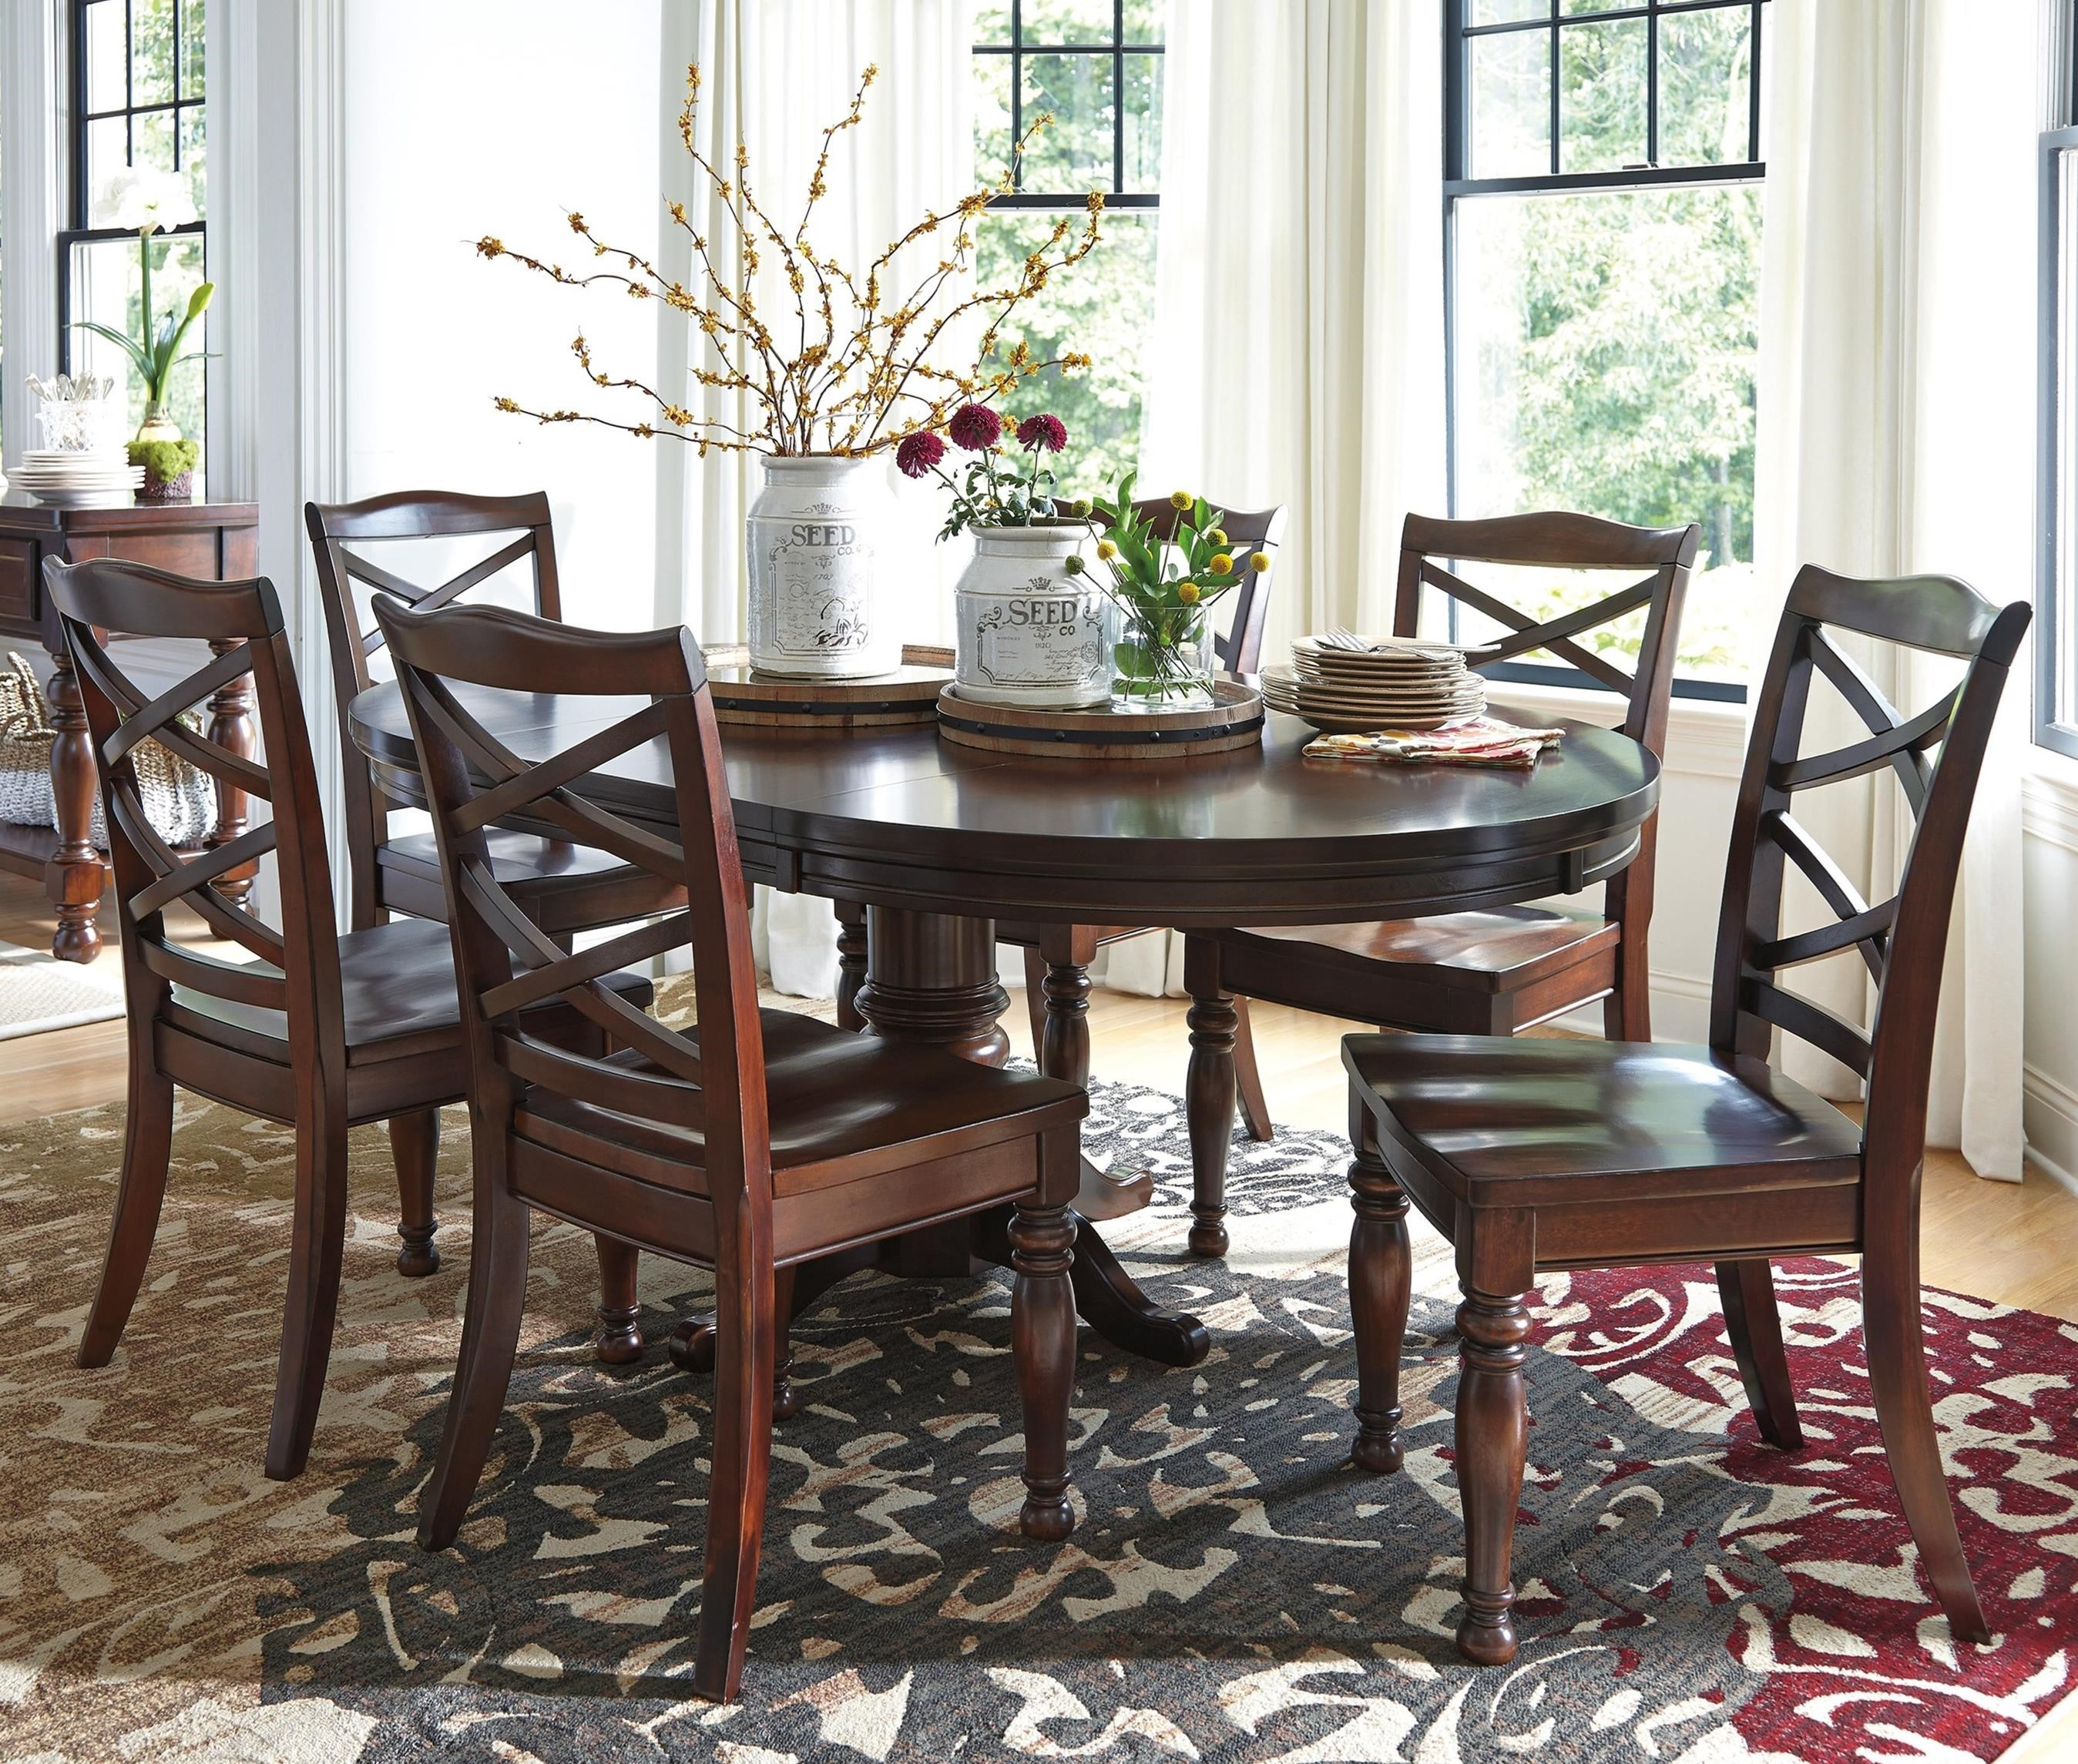 Delightful Ashley Furniture Porter 7 Piece Round Dining Table Set